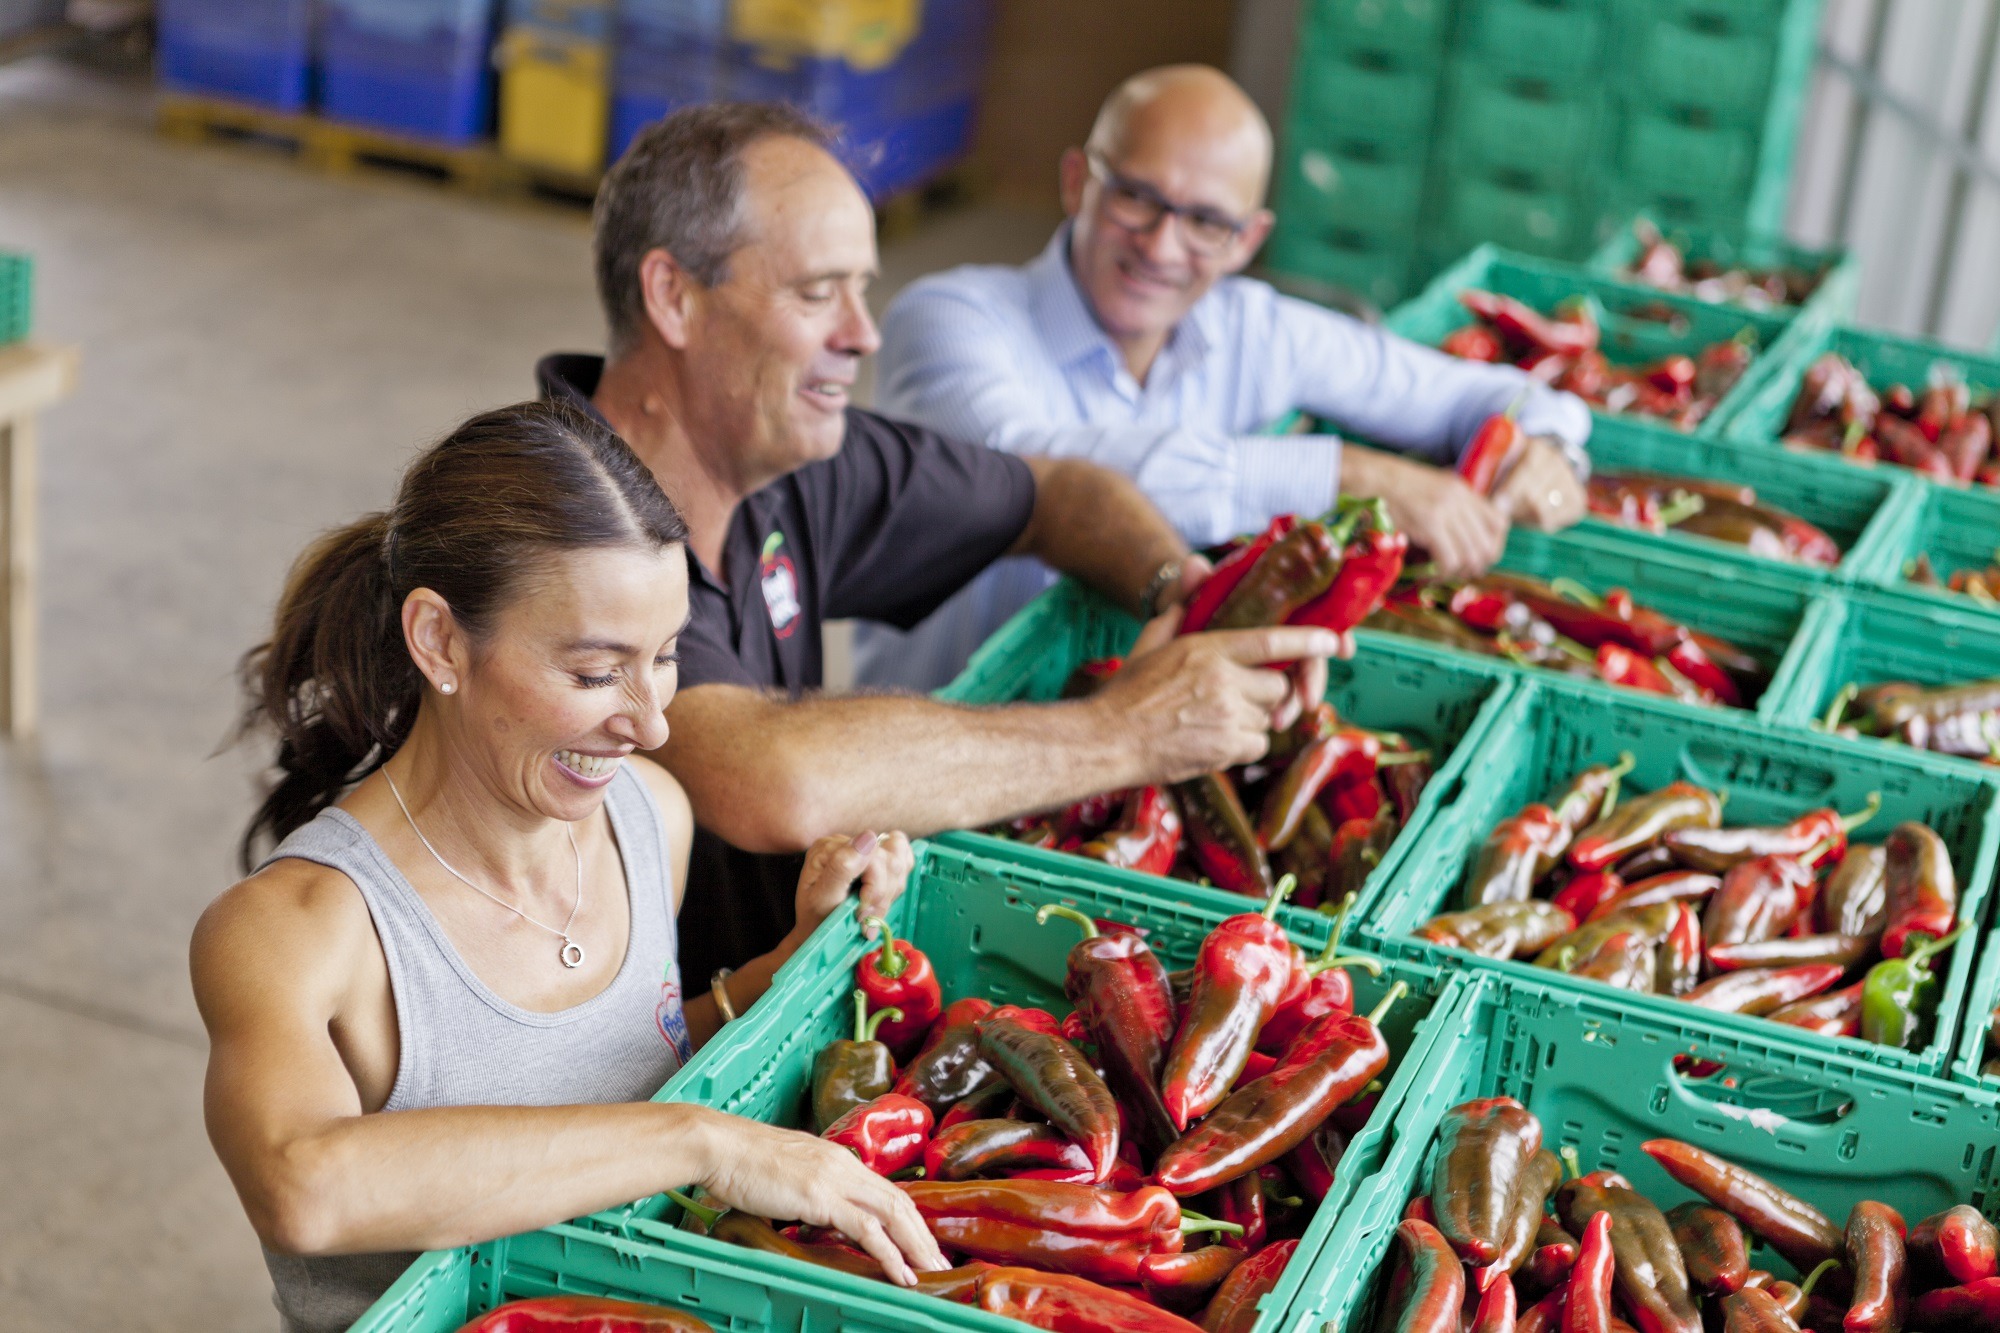 Freshwest, a family owned pepper business based in Glenbrook, New Zealand, has found its place in the market with the sweet pointed pepper, Sweet Palermo.